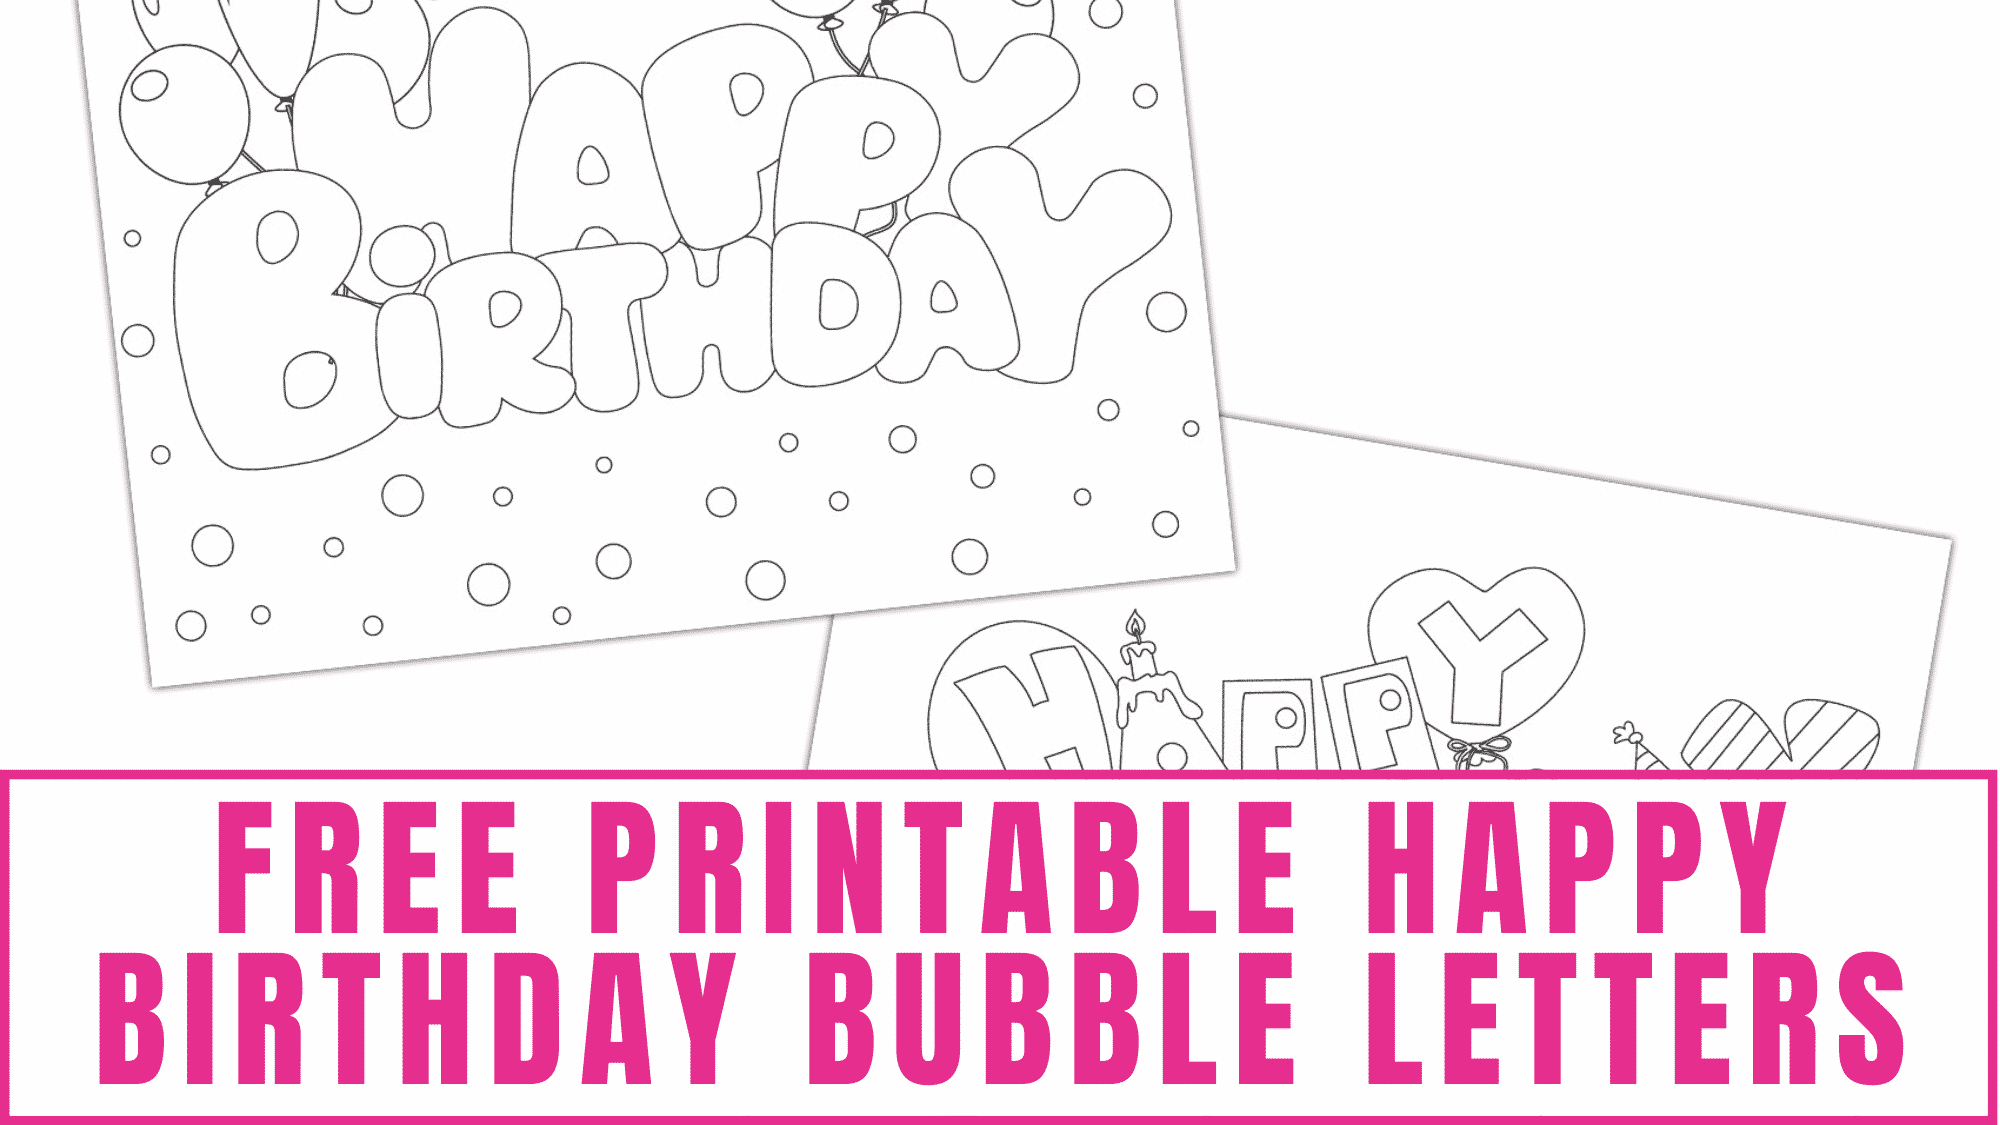 """Don't just give someone a store-bought card to wish them """"Happy Birthday"""" create a one of a kind piece of artwork by decorating one of these free printable happy birthday bubble letters signs."""